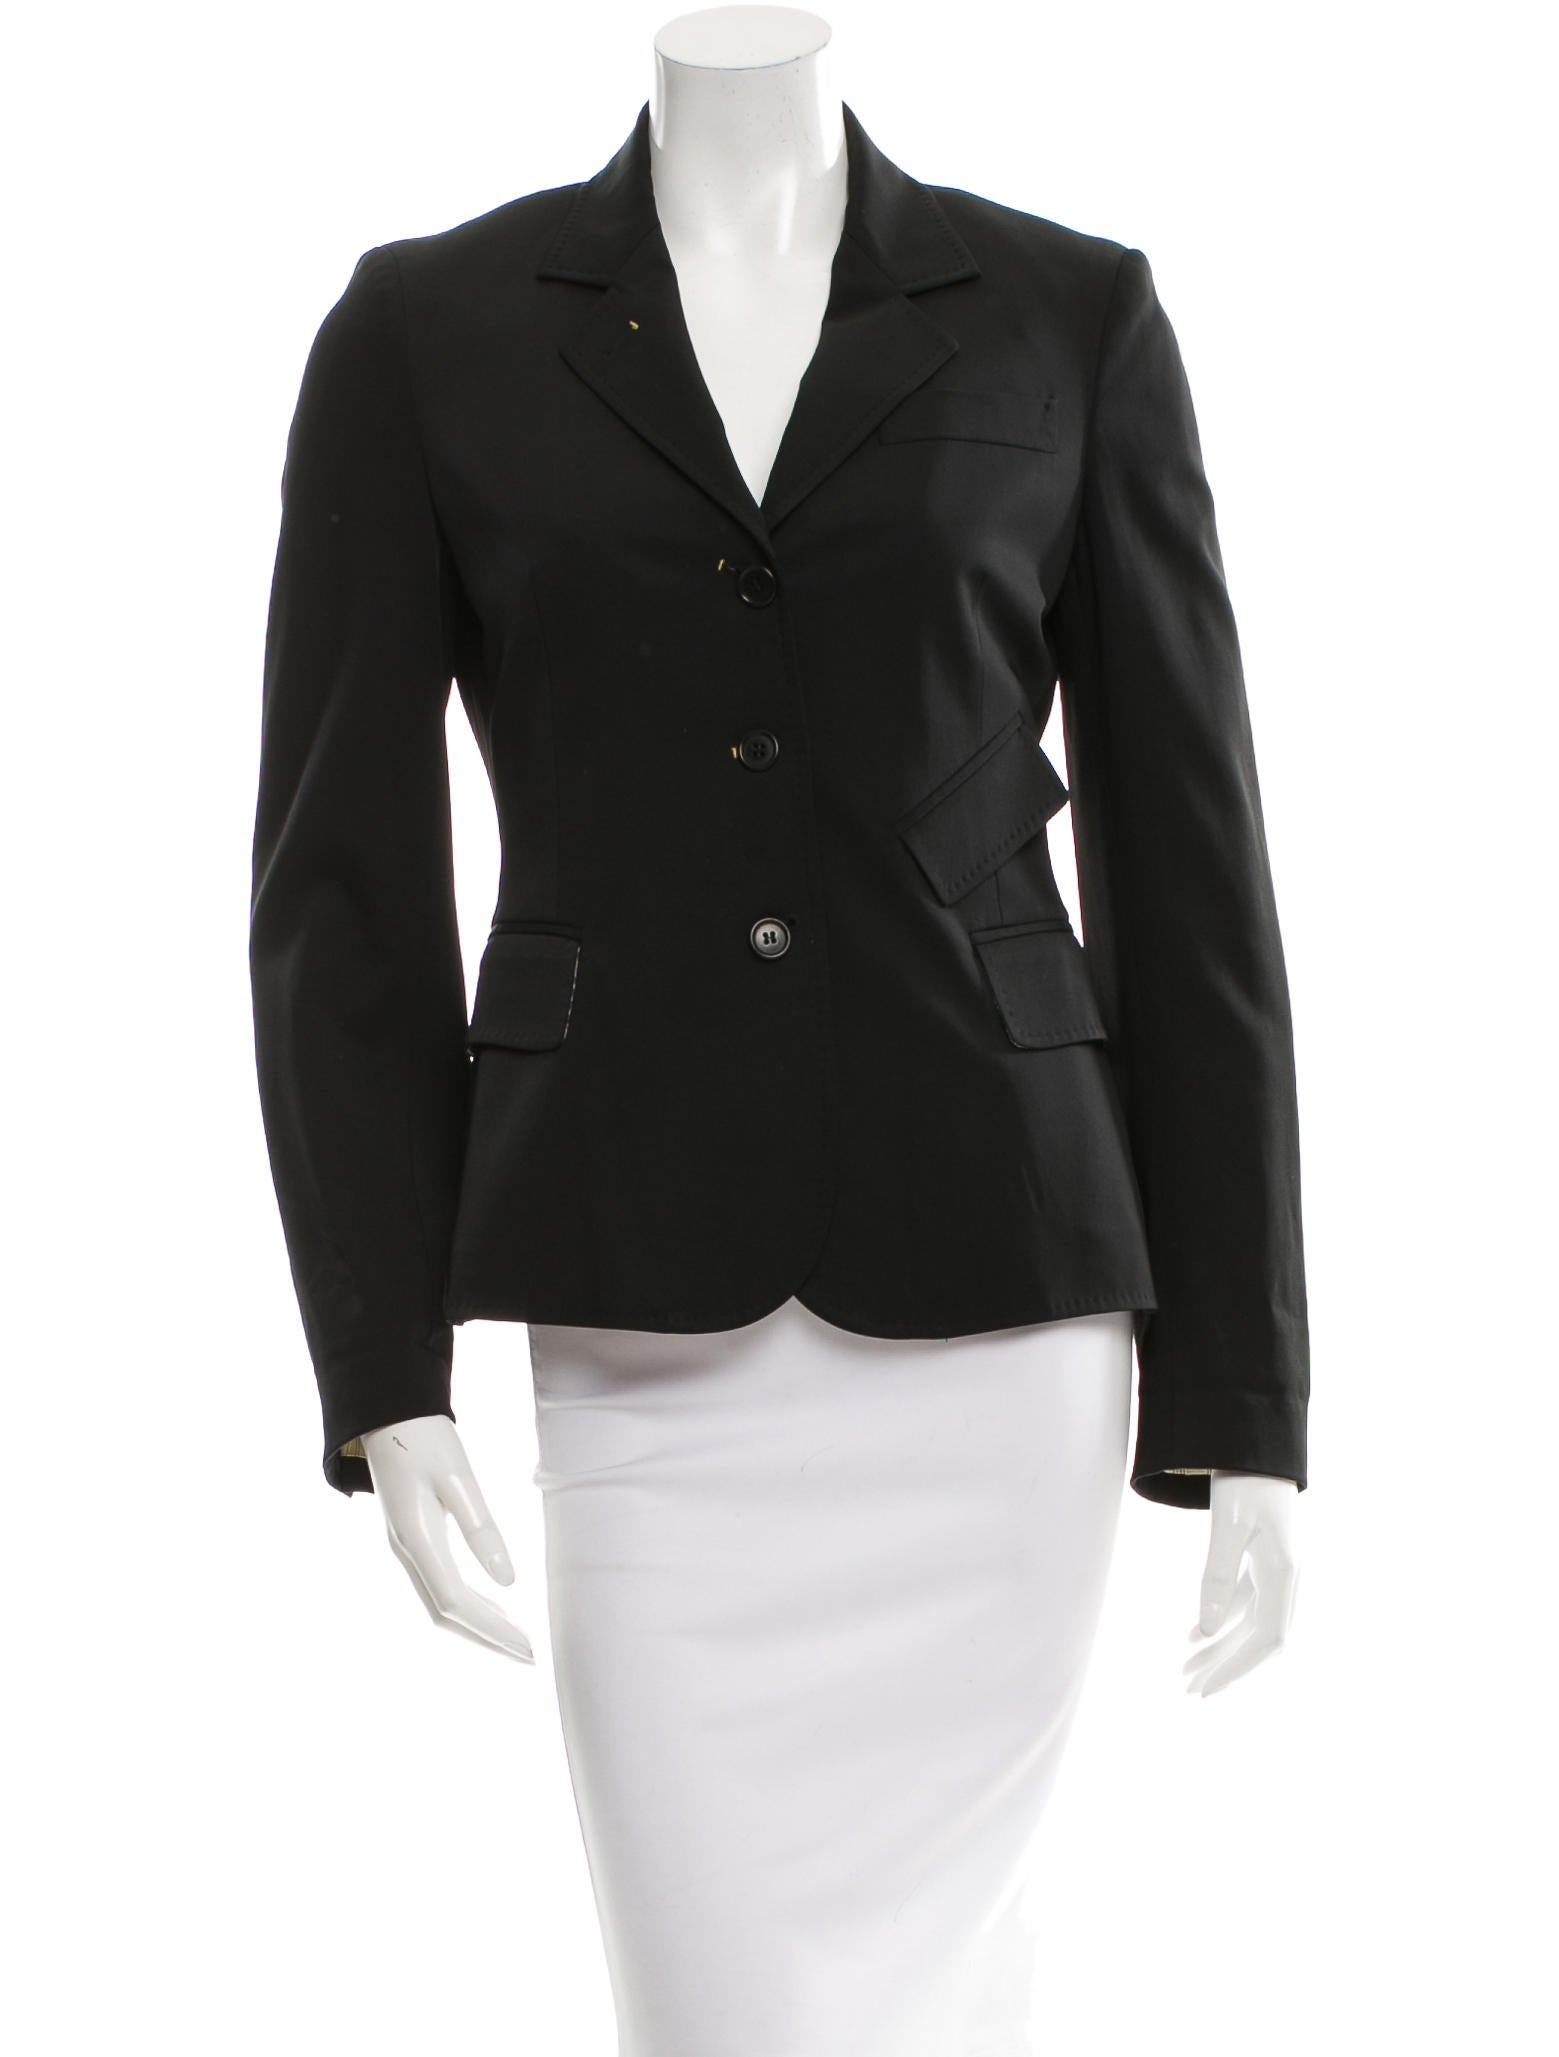 How to Find a Blazer Jacket That Fits. Any other blazer jacket fit tips you'd like to share? 51 For most women, a jacket that ends around the hip is a good start, and a long coat that ends just above the knee or mid-thigh is usually good for petites (below the knee starts to make us look stumpy).